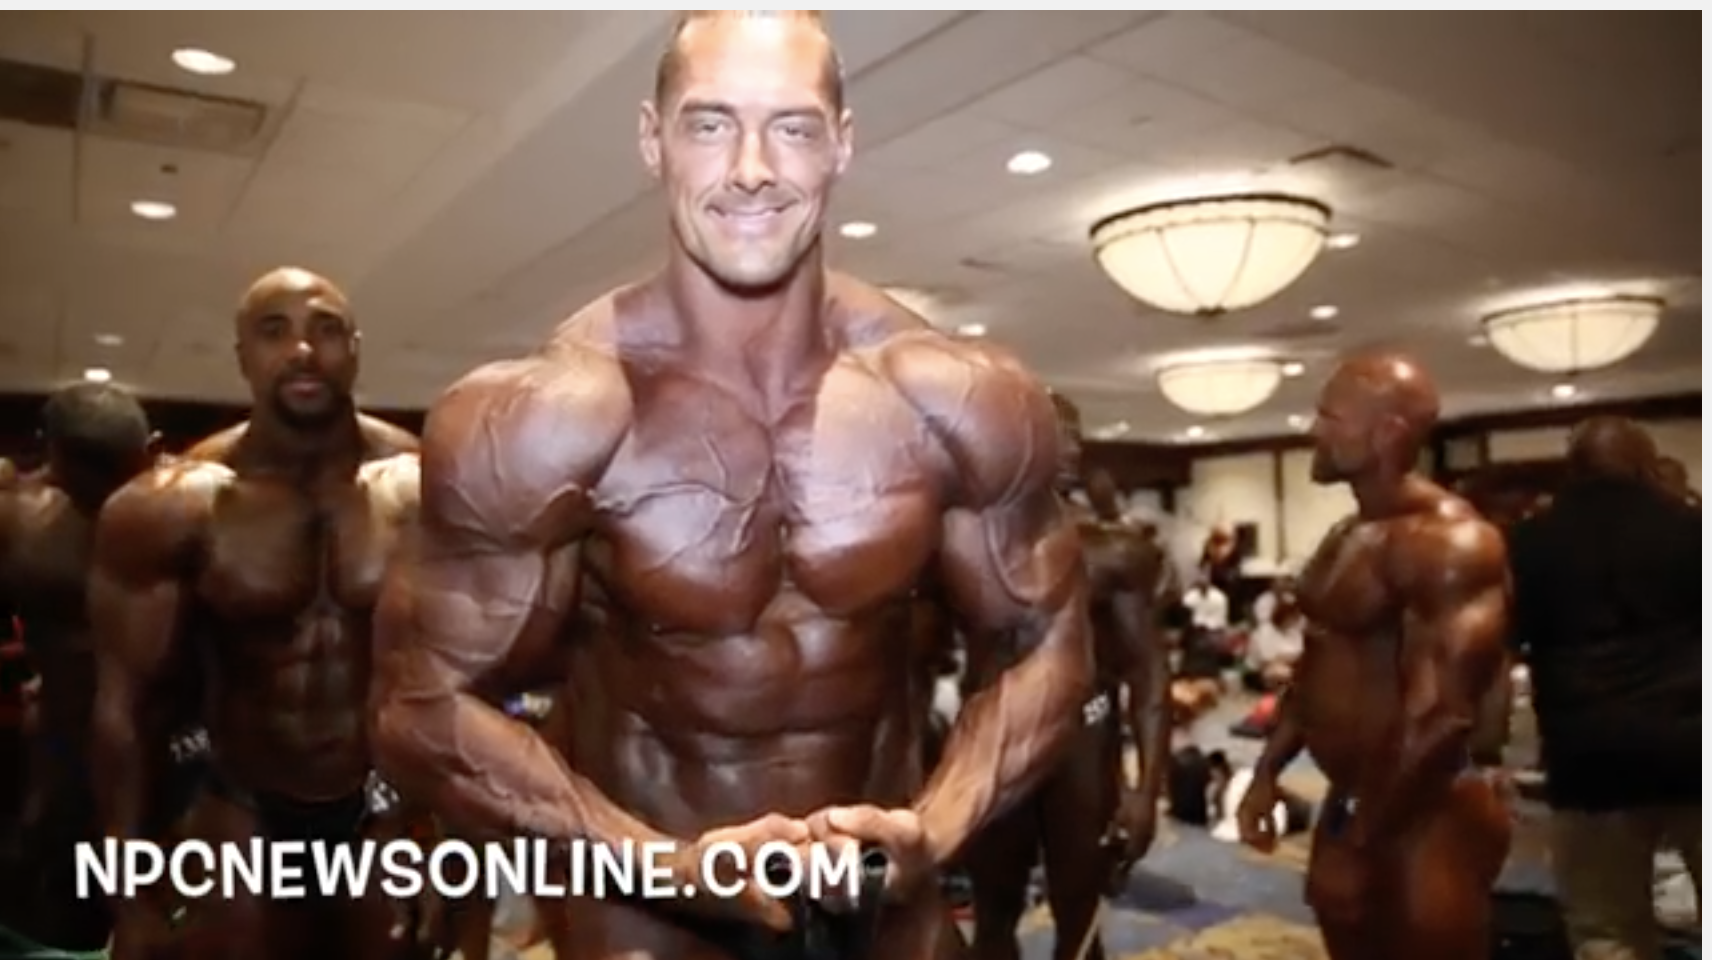 2017 NPC Teen, Collegiate Masters Nationals Bodybuilding Backstage Video.